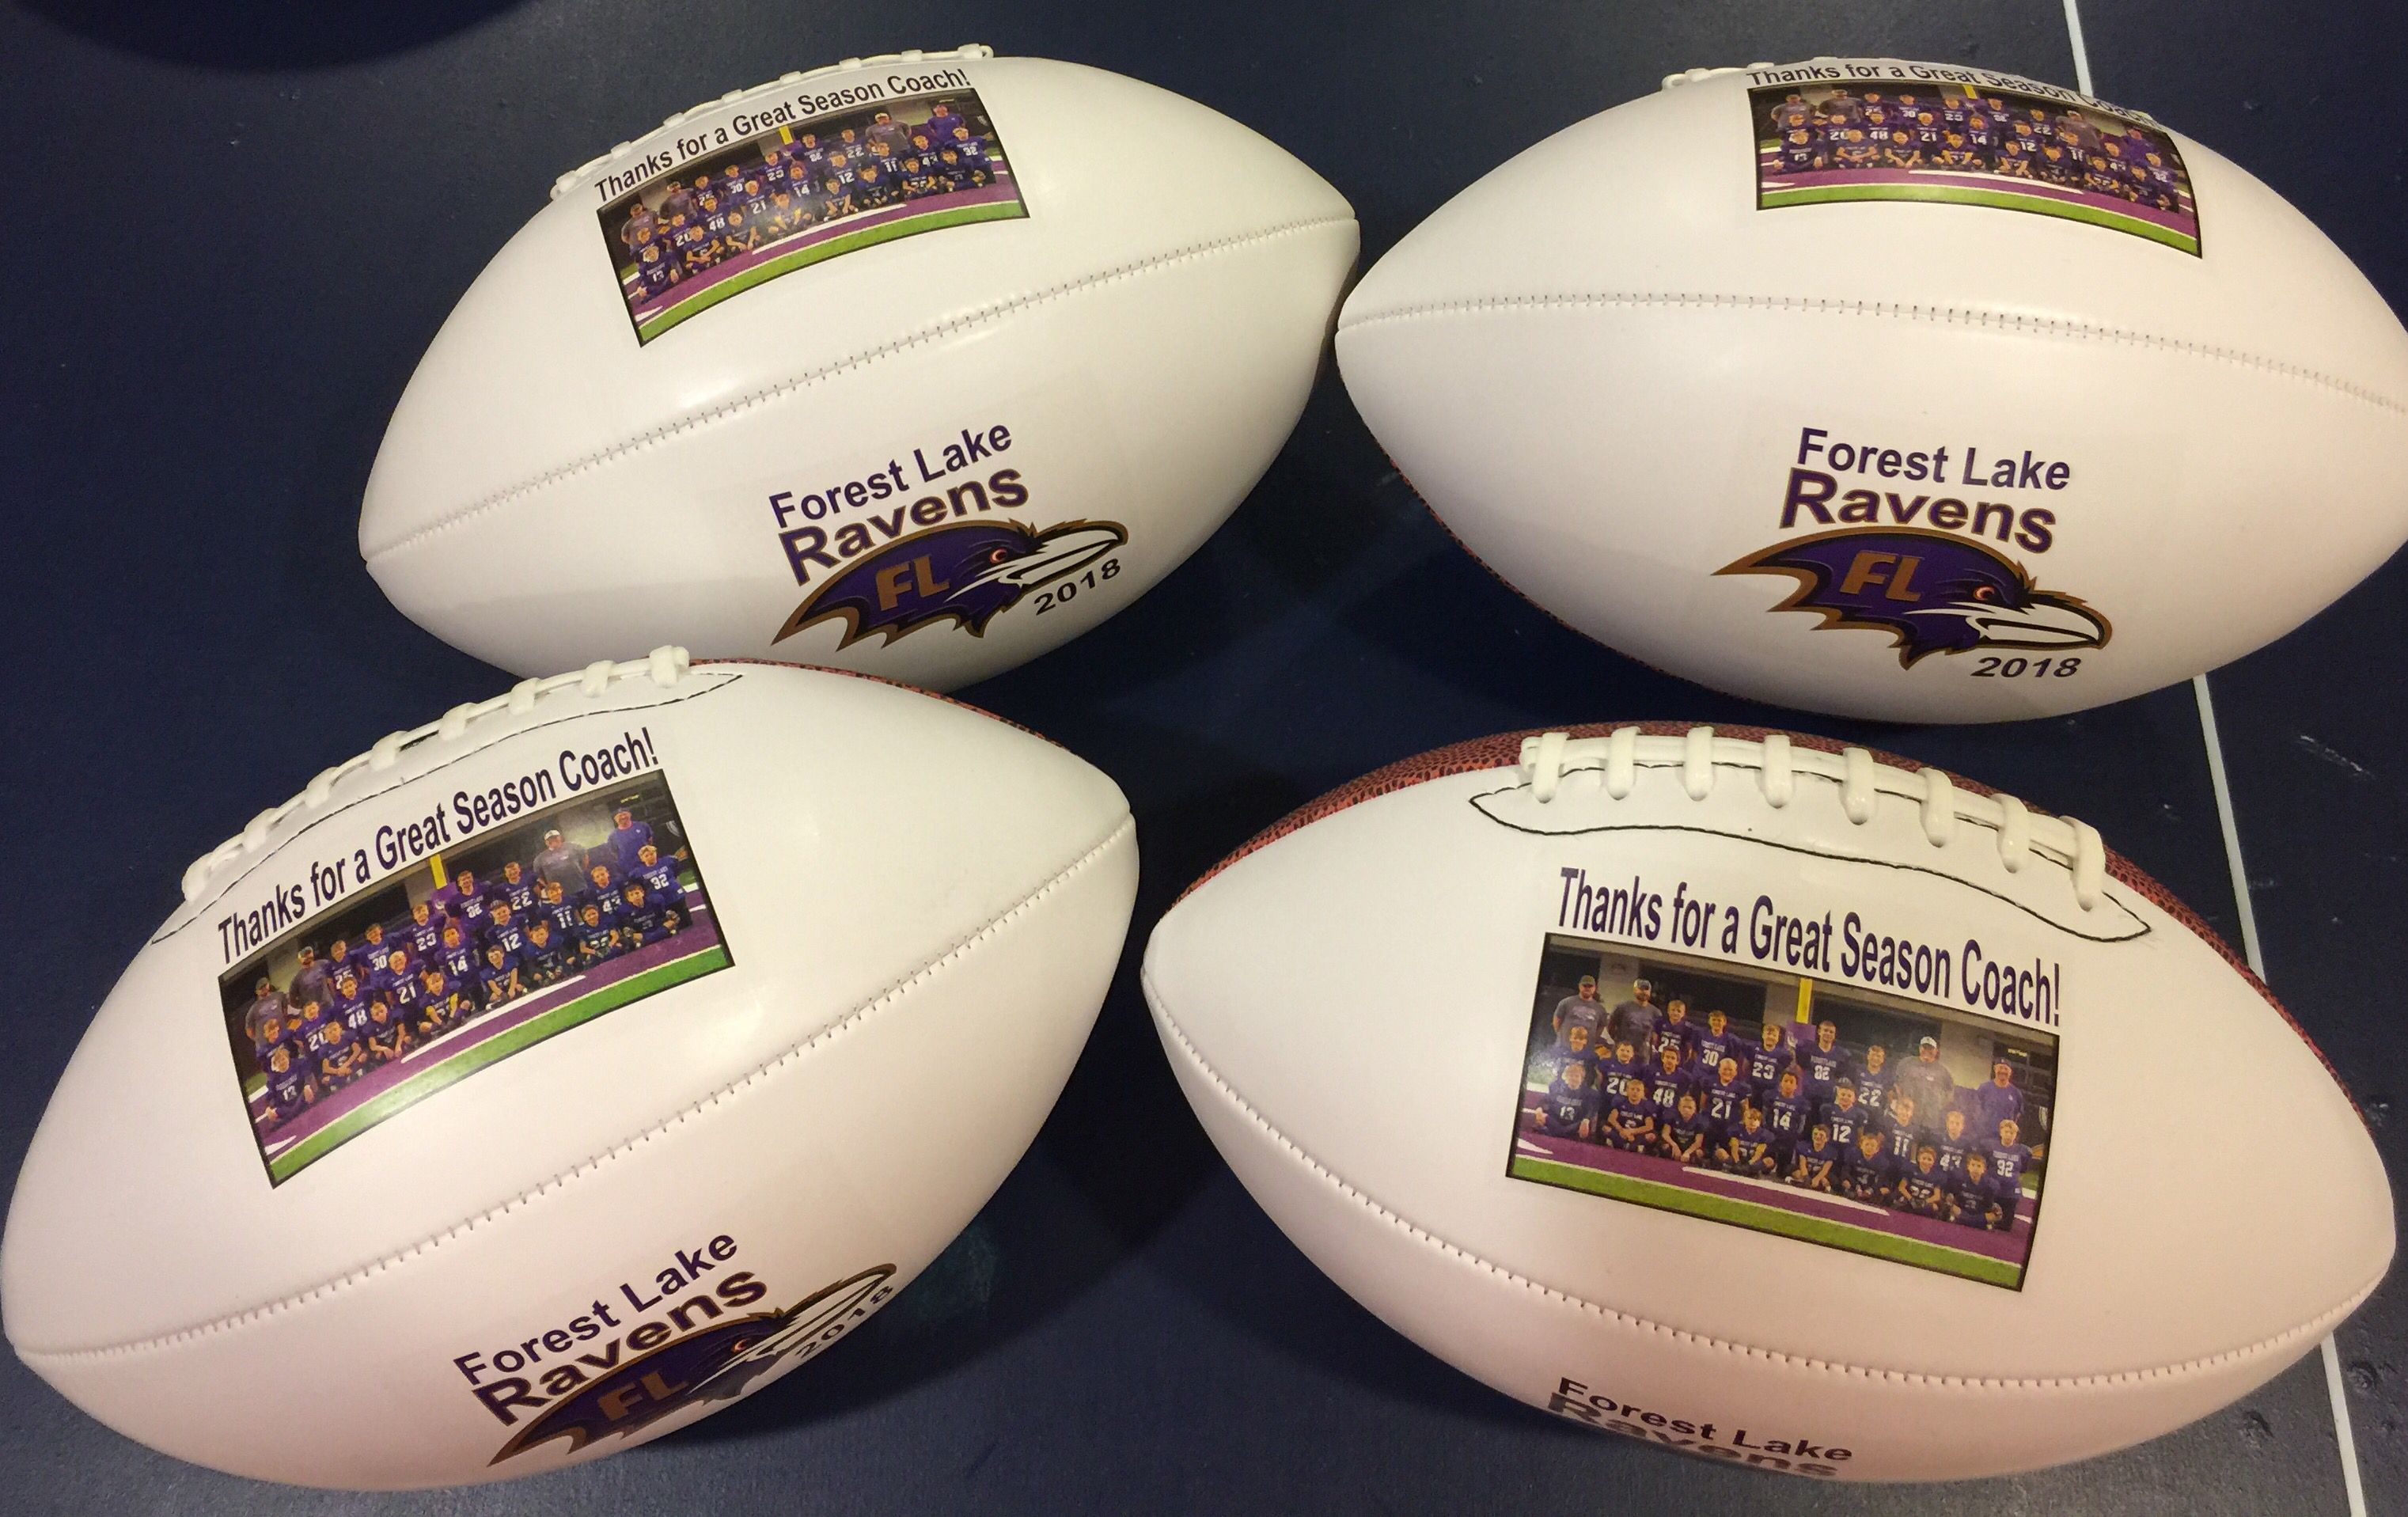 d29a5704a What a fantastic gift for the coaches and players! Have the players sign  them to personalize even more!  football  coachgift  getontheballphotos